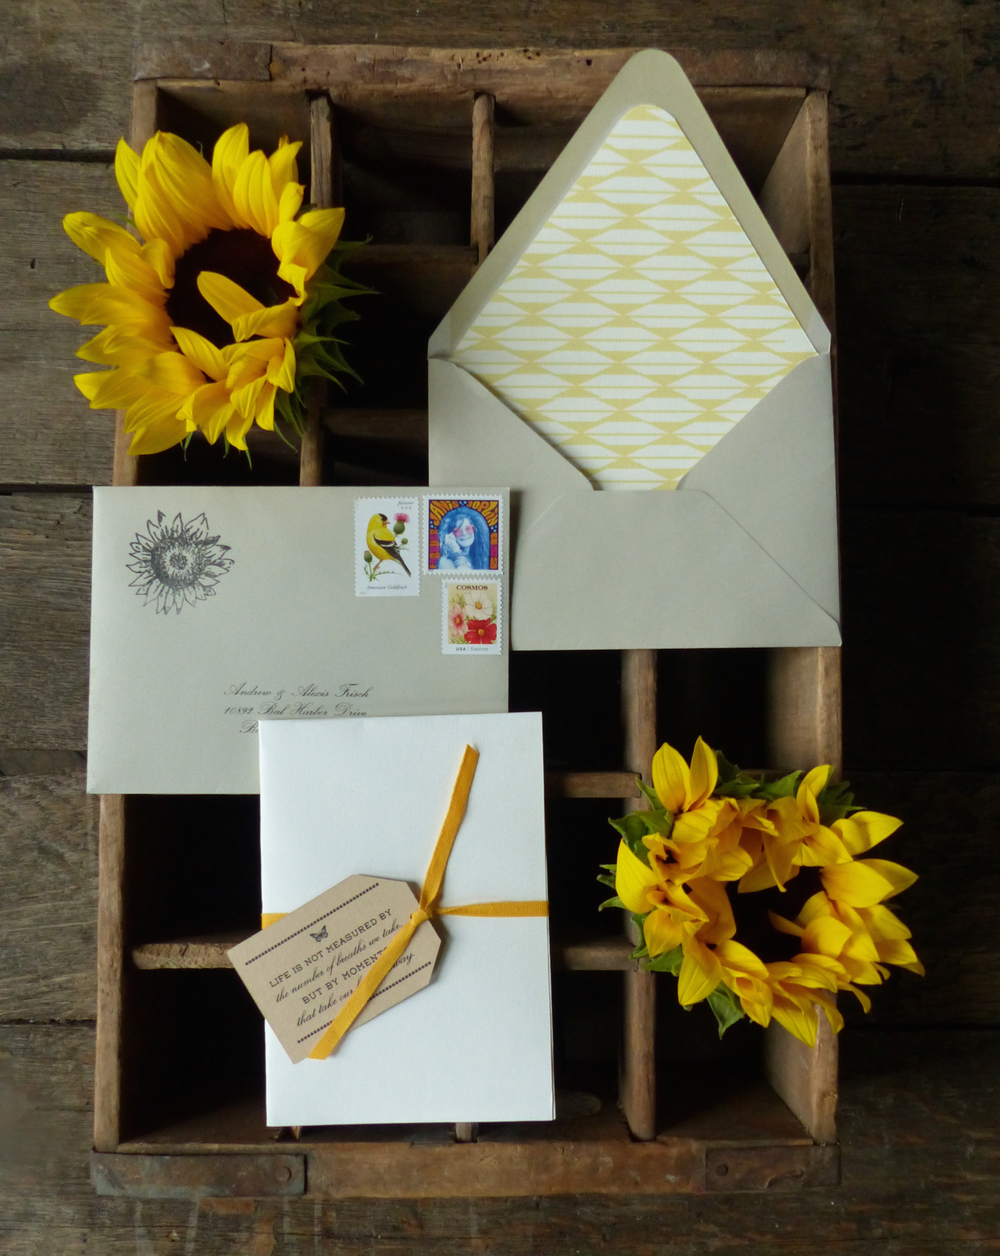 The invitation was delivered folded up inside of a regular old envelope, and bound with a sunny yellow cotton ribbon and tag.